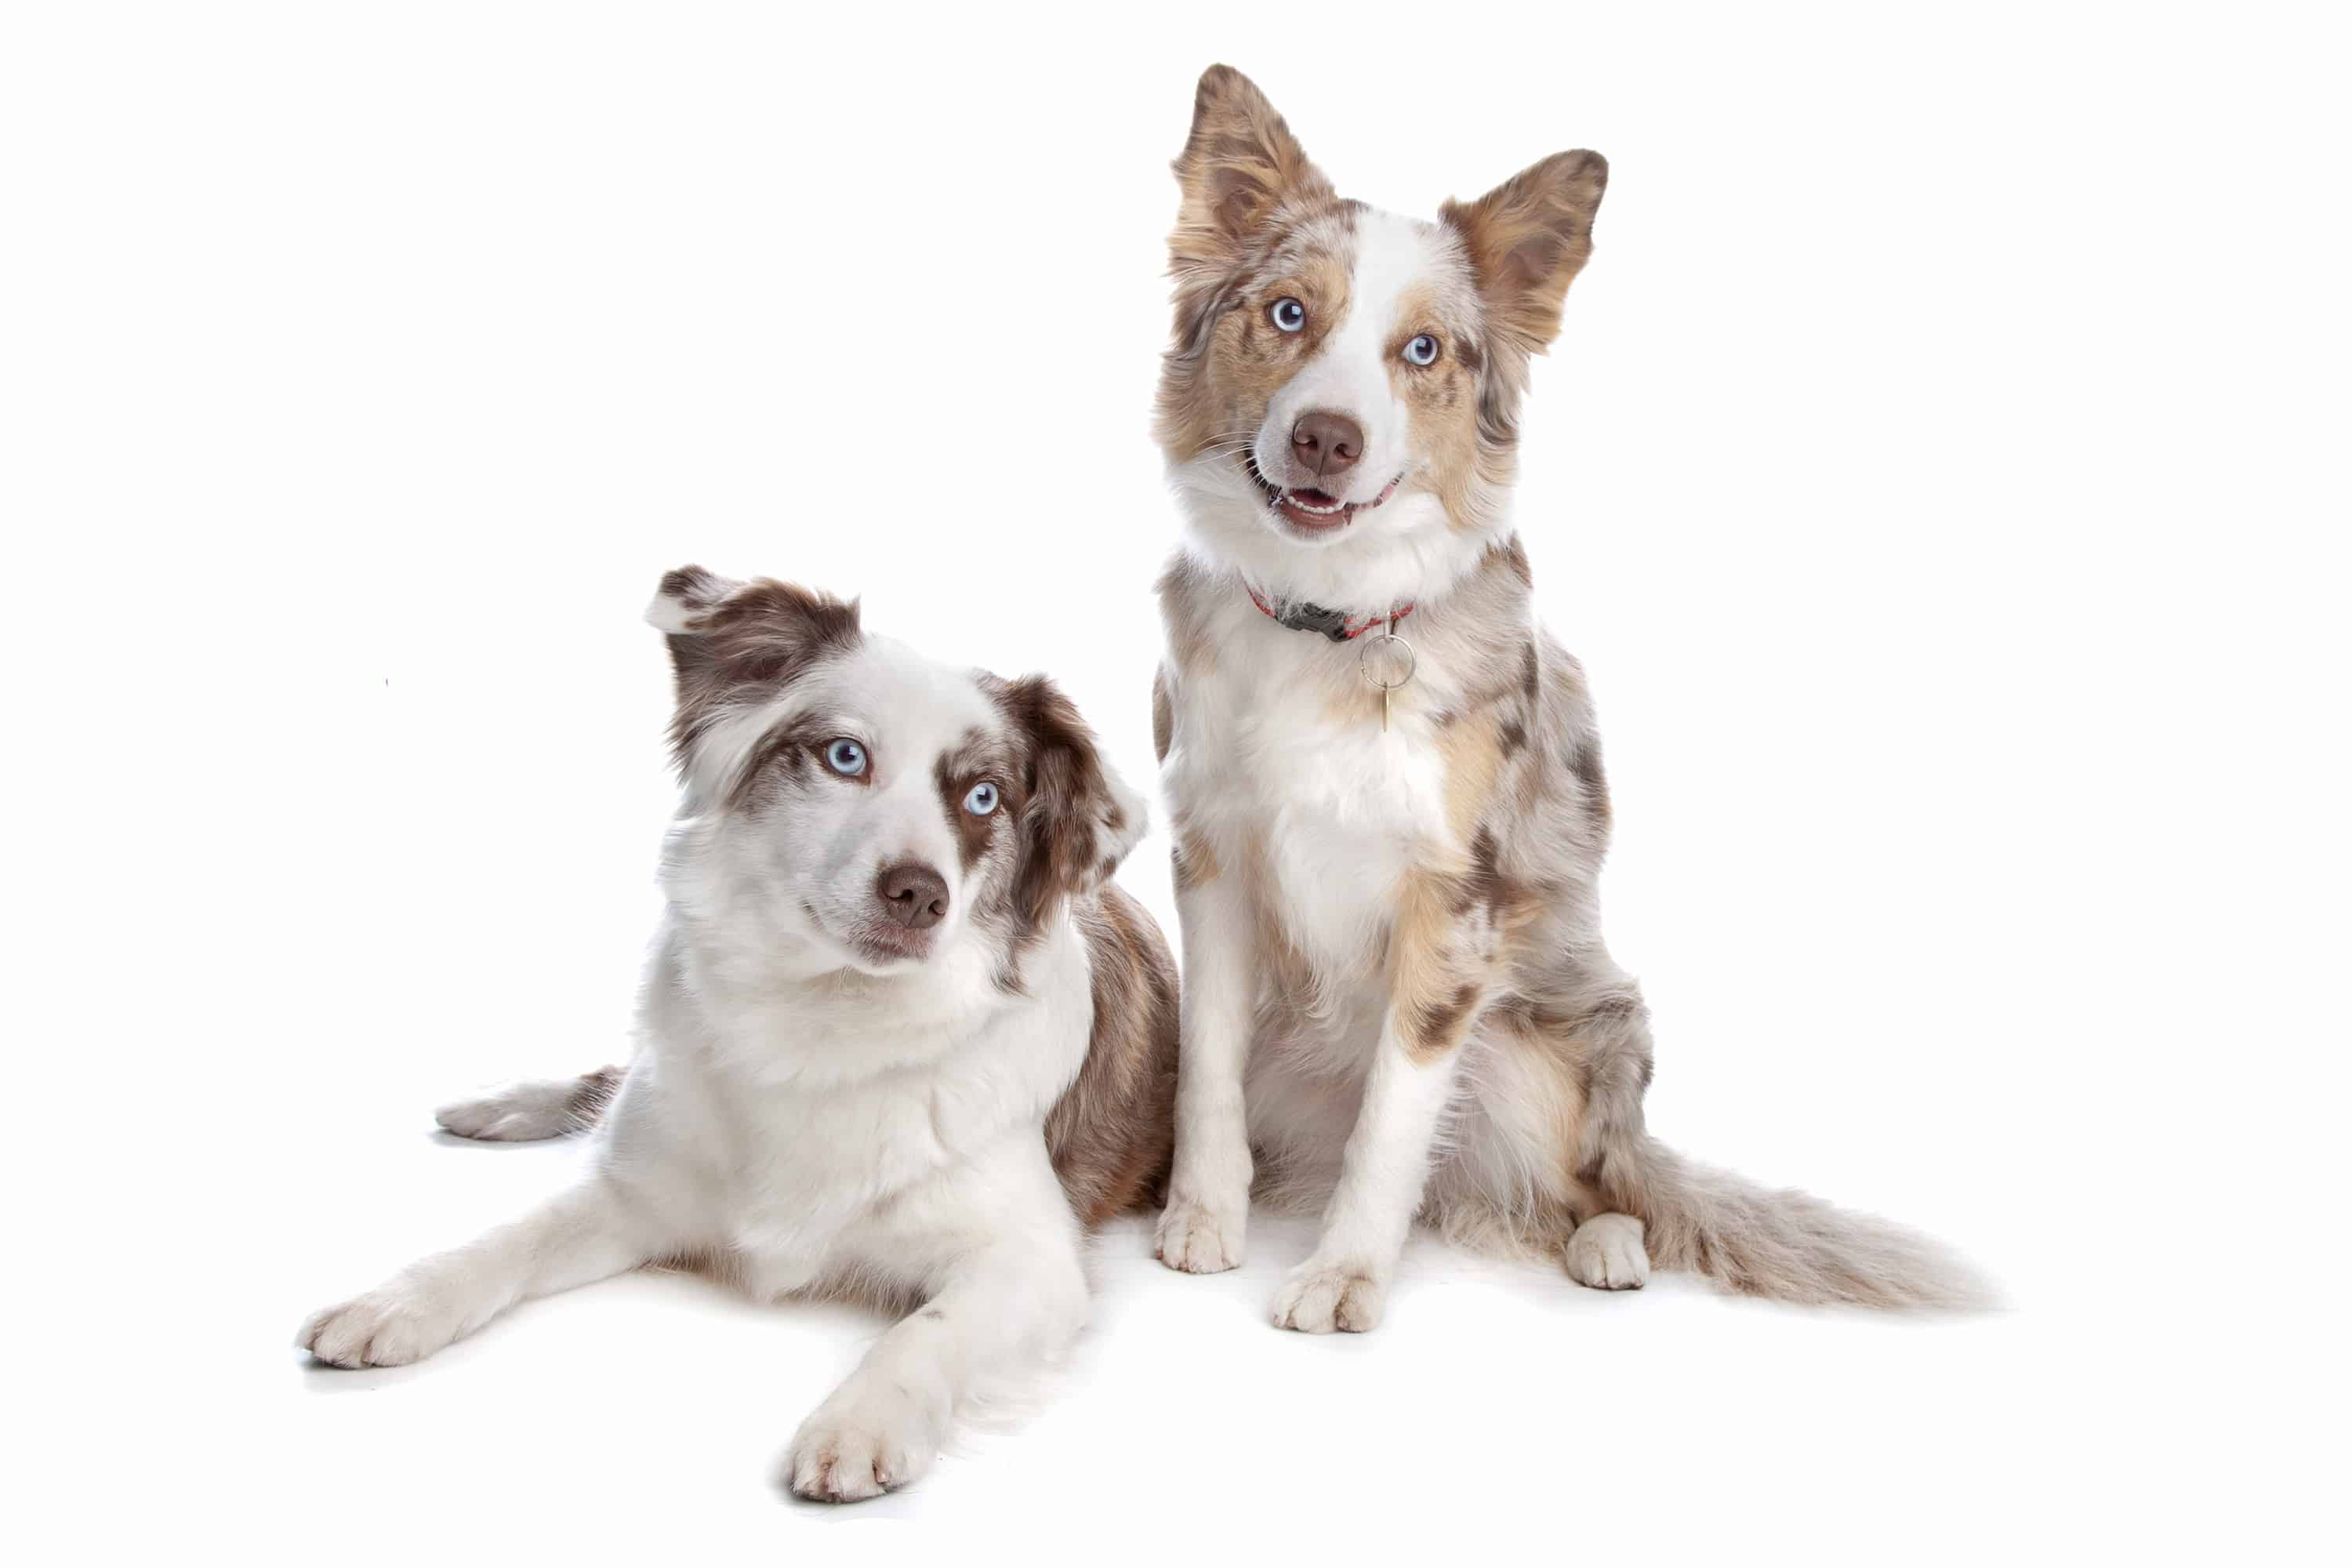 dogs at daycare – Copy